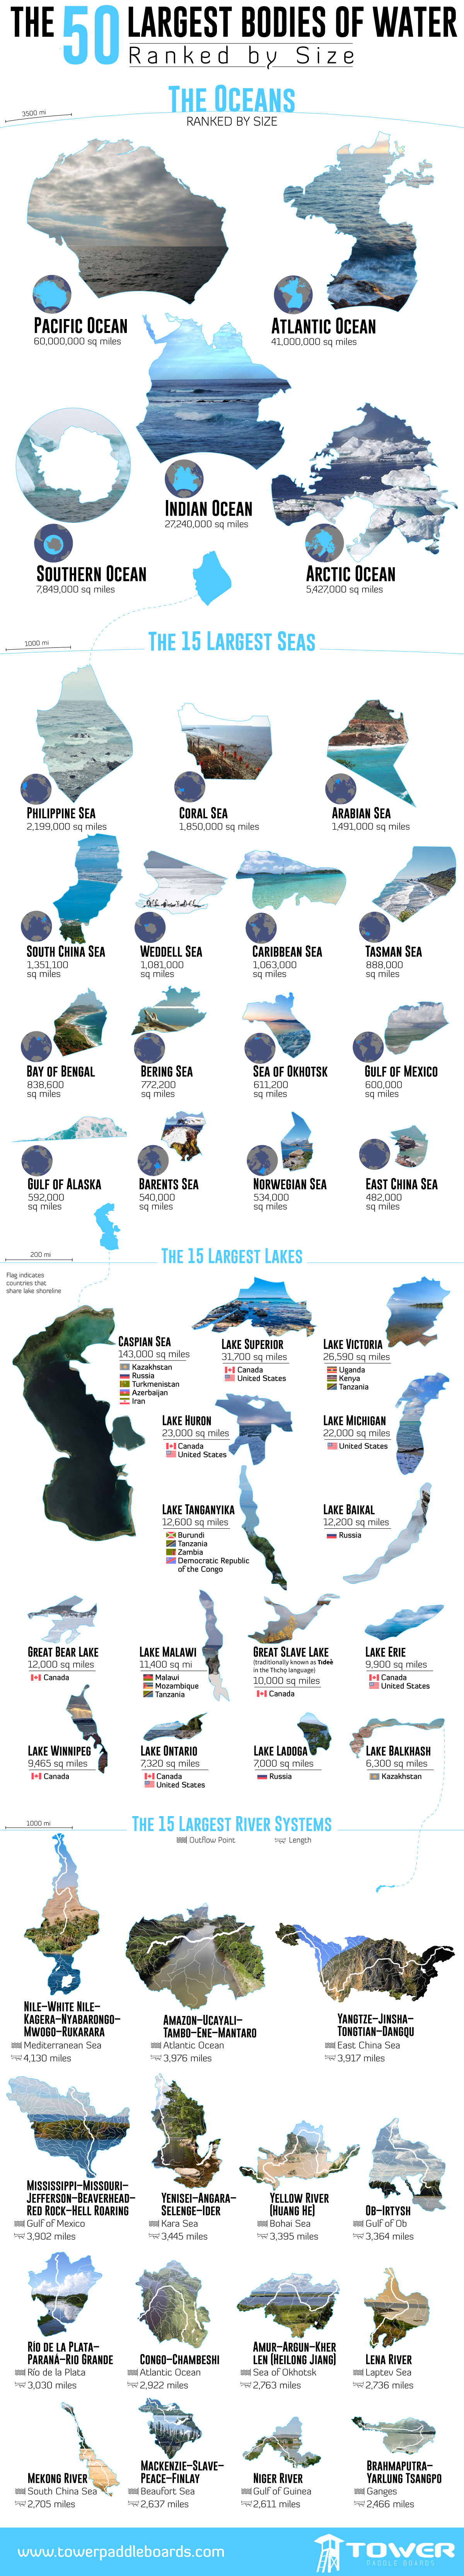 Largest Bodies of Water Ranked by Size